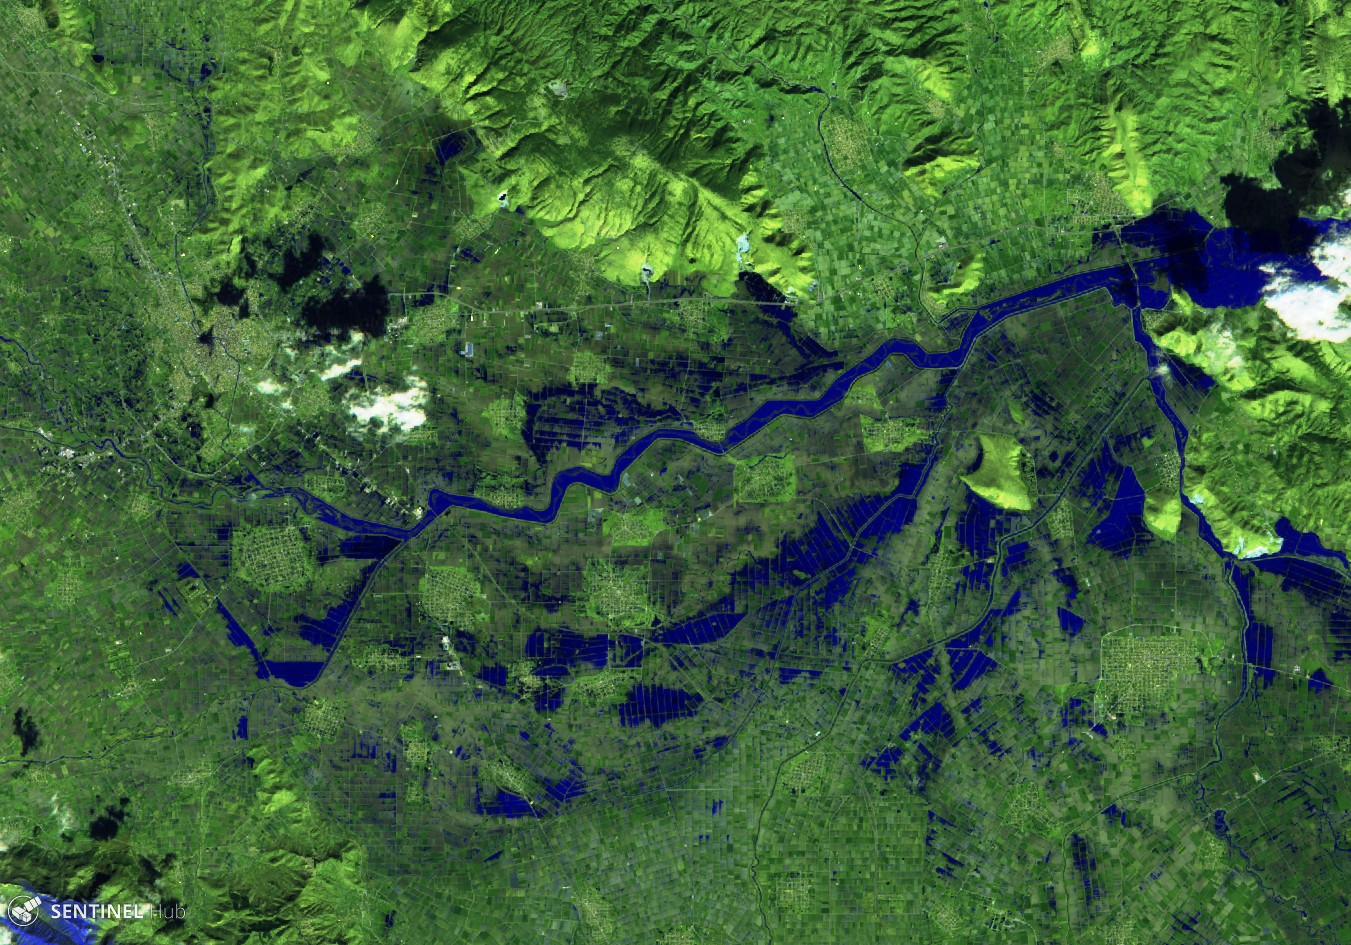 The Use of Satellite Imagery in Crisis Management after Flooding